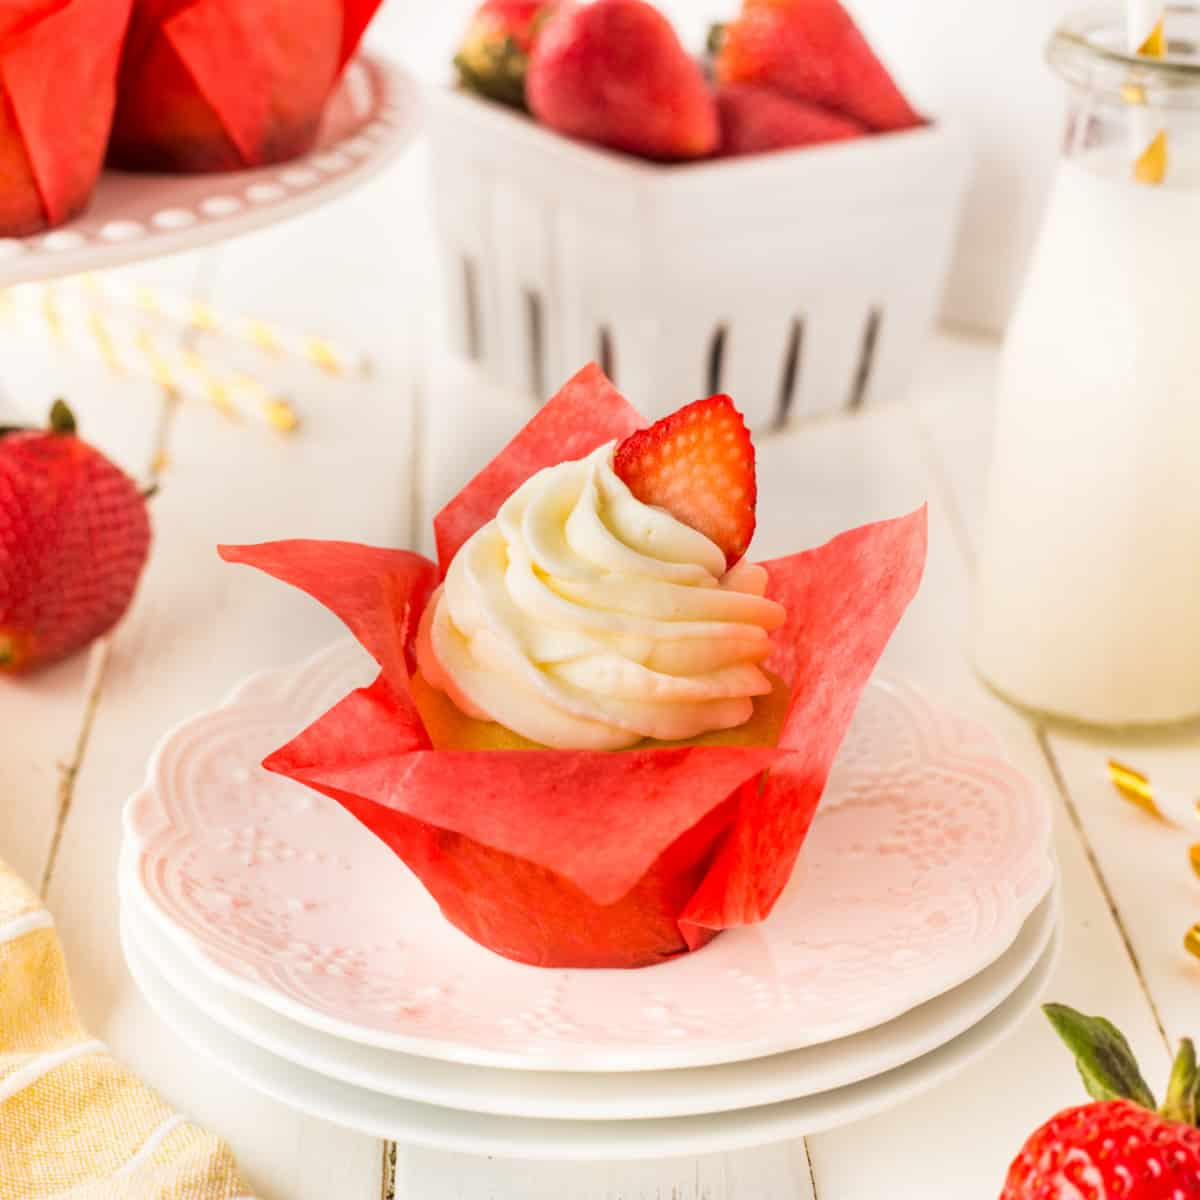 A gorgeous Strawberry Shortcake Cupcake in a red tulip liner on a white plate.